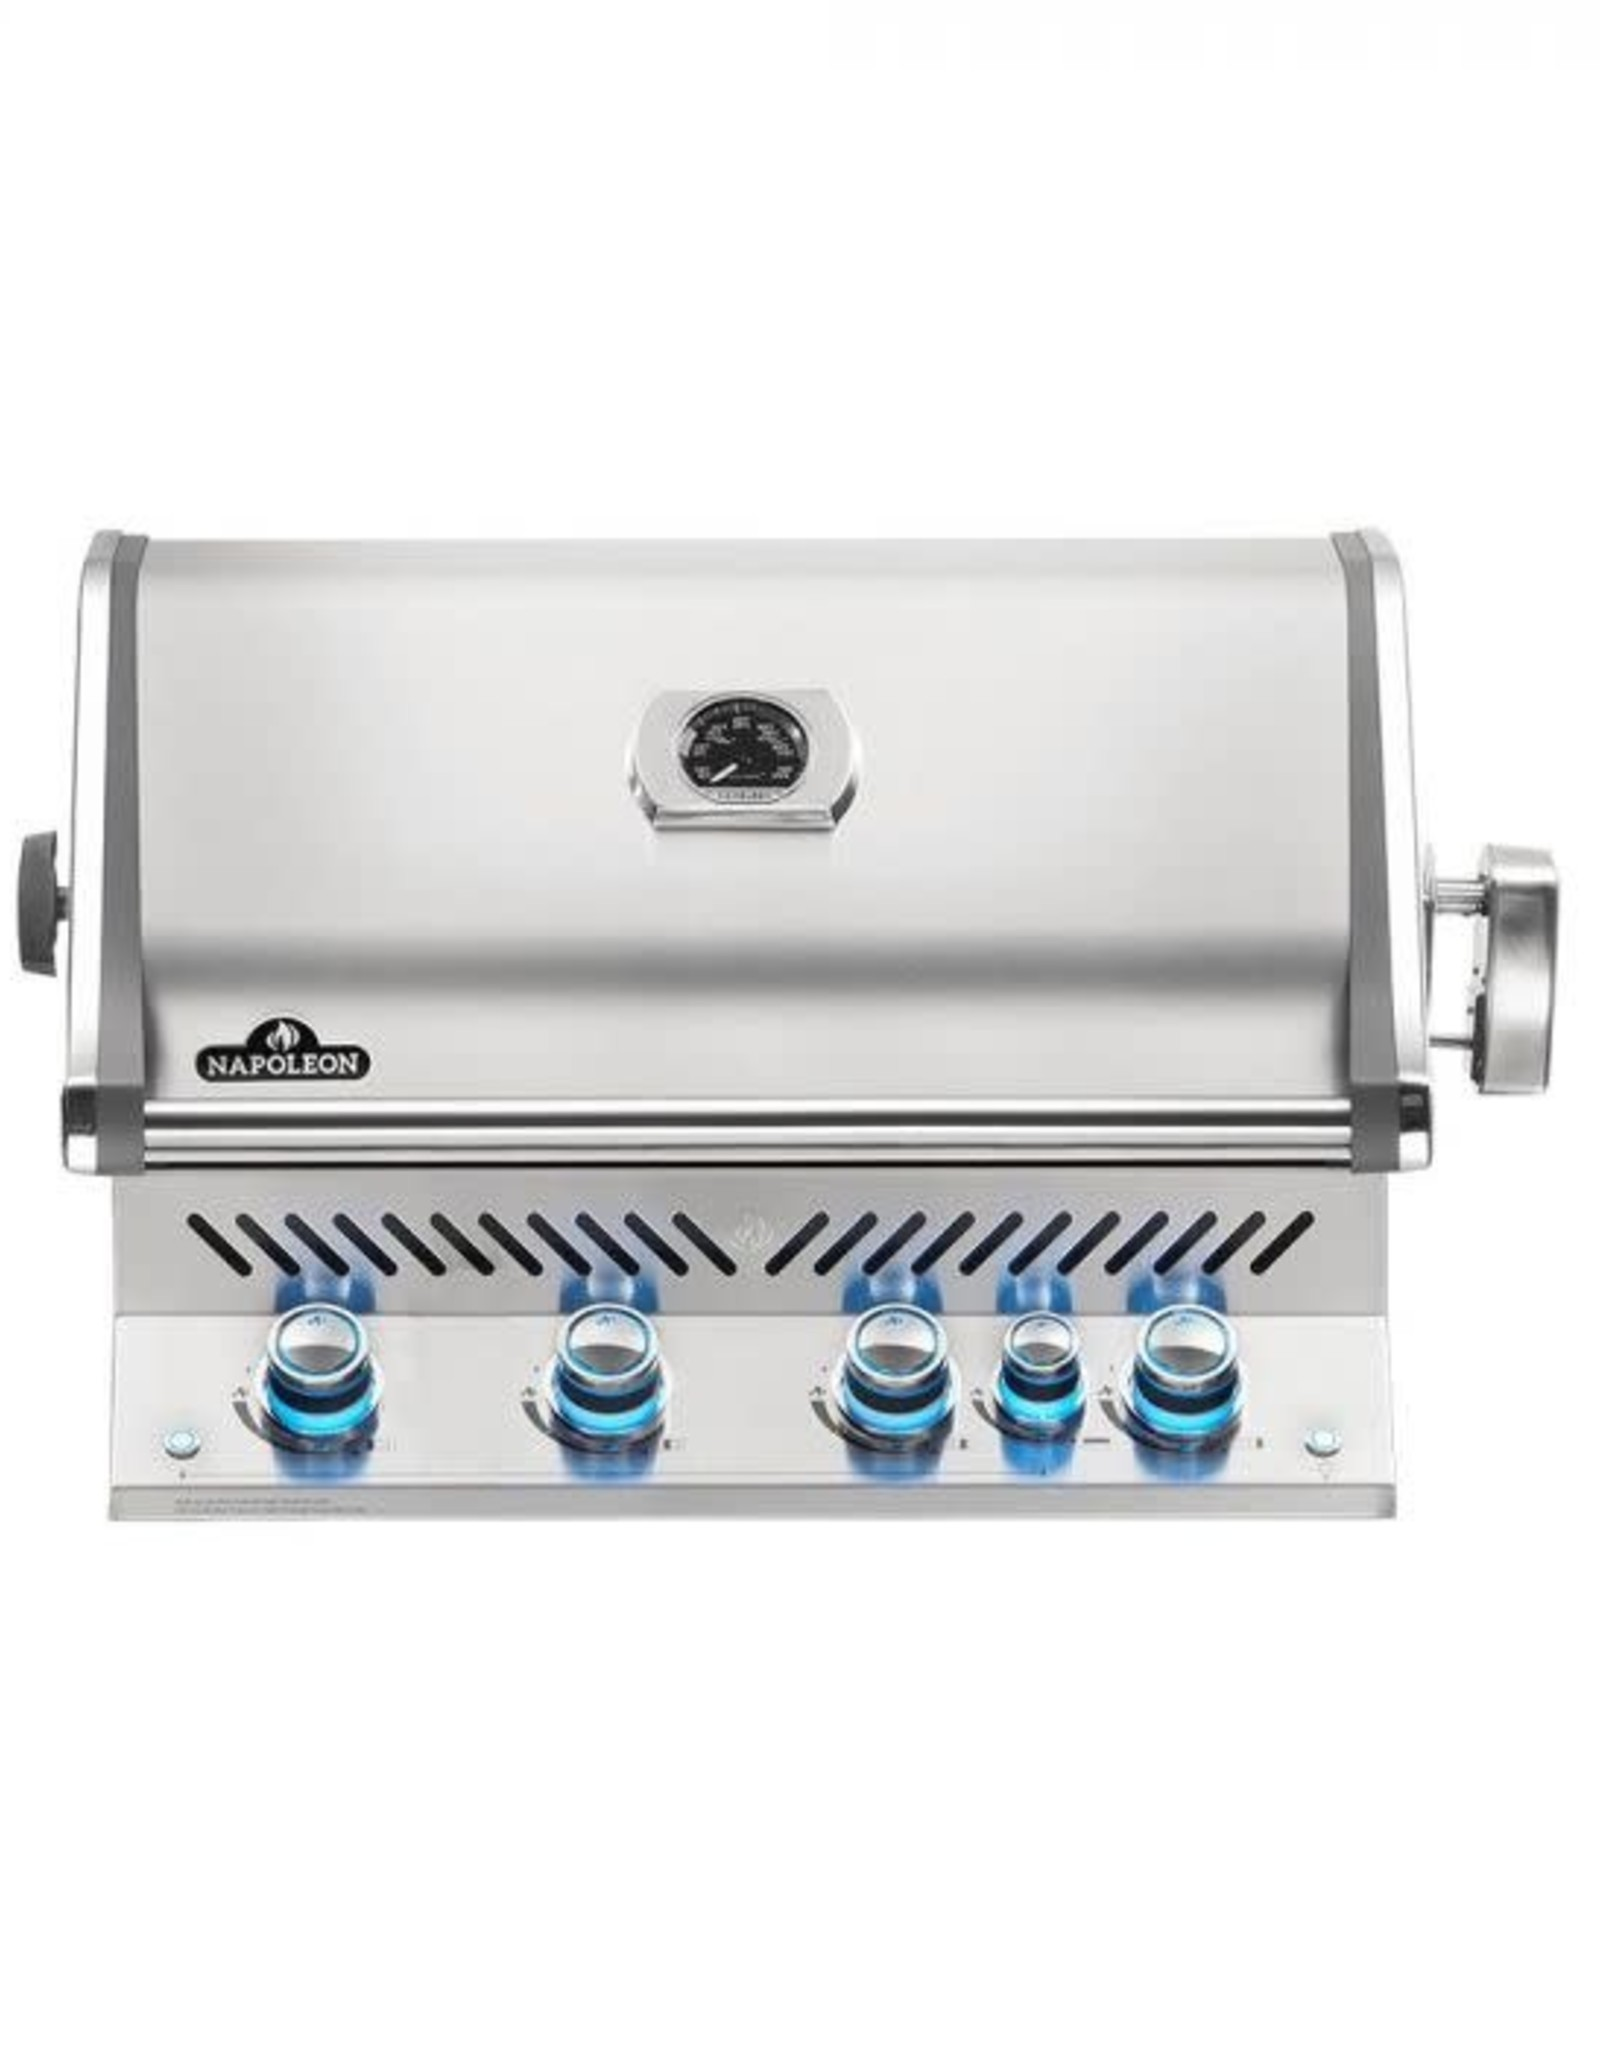 Napoleon Napoleon Prestige PRO 500 Built-in Natural Gas Grill with Infrared Rear Burner and Rotisserie Kit - BIPRO500RBNSS-3